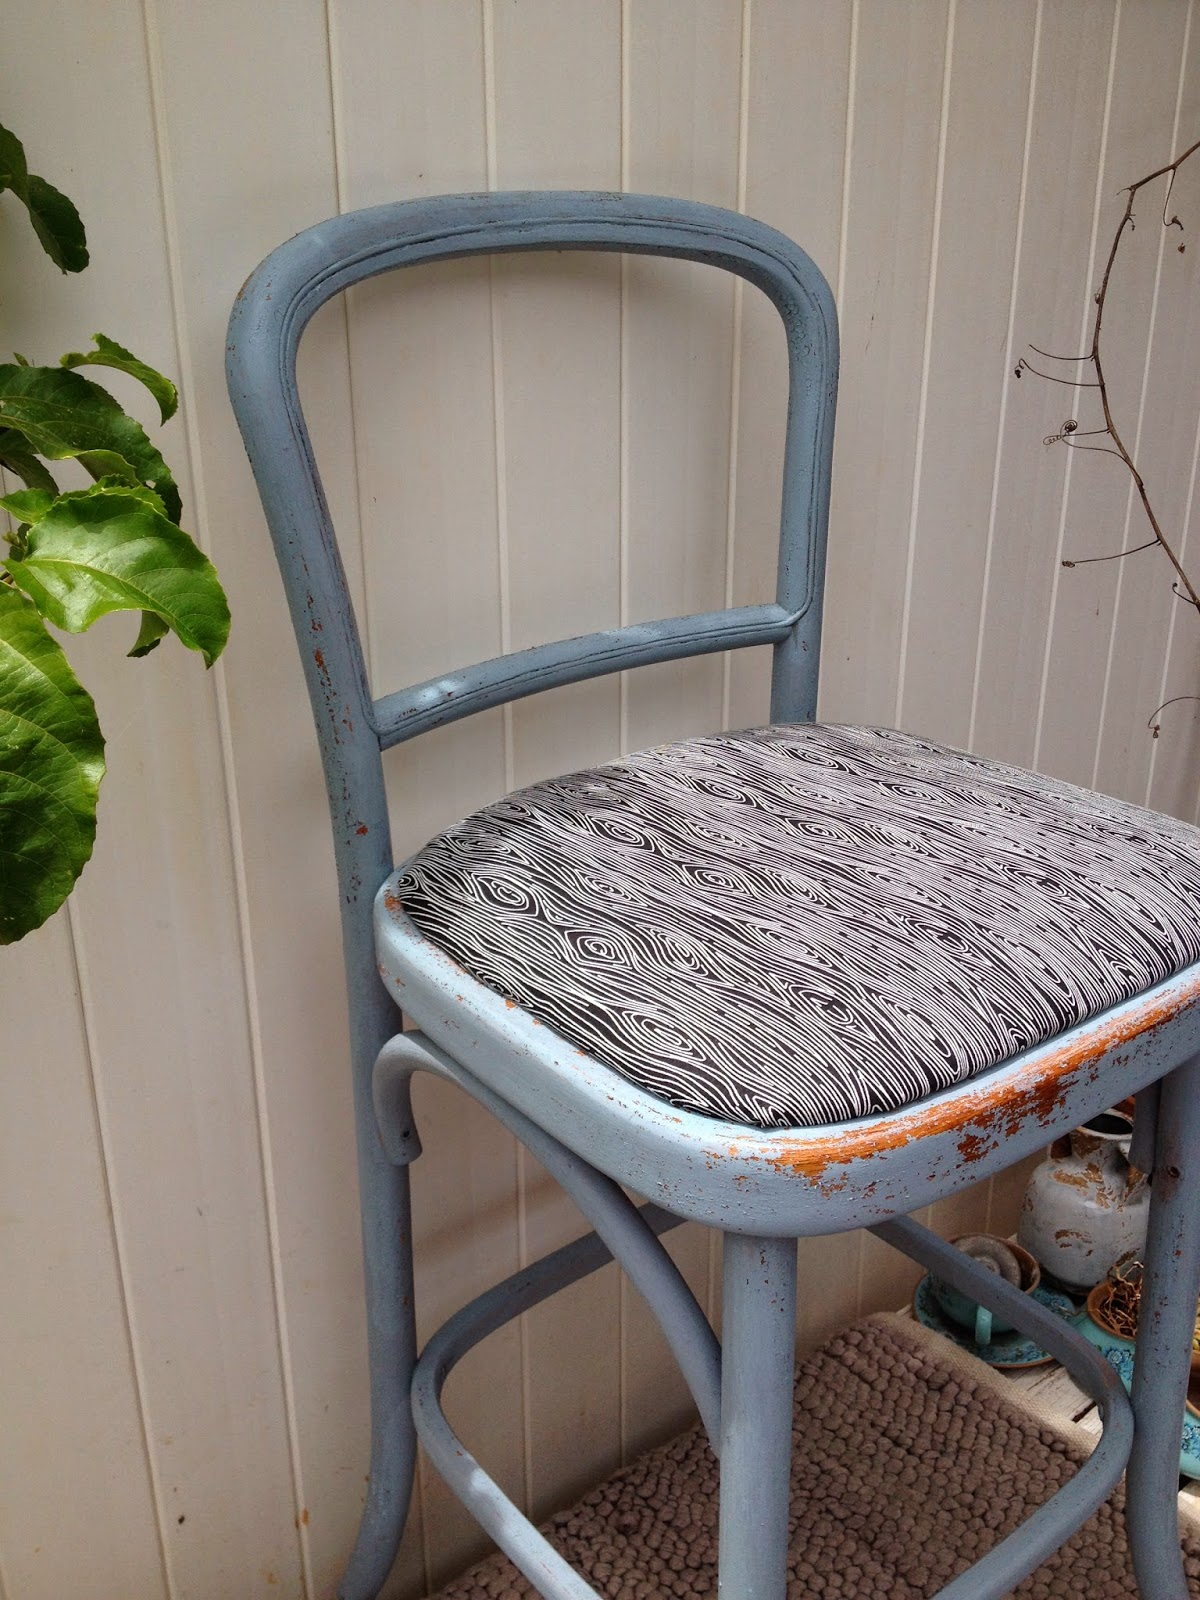 Rattan Ironstone Blue Chippy Chair before and after milk paint